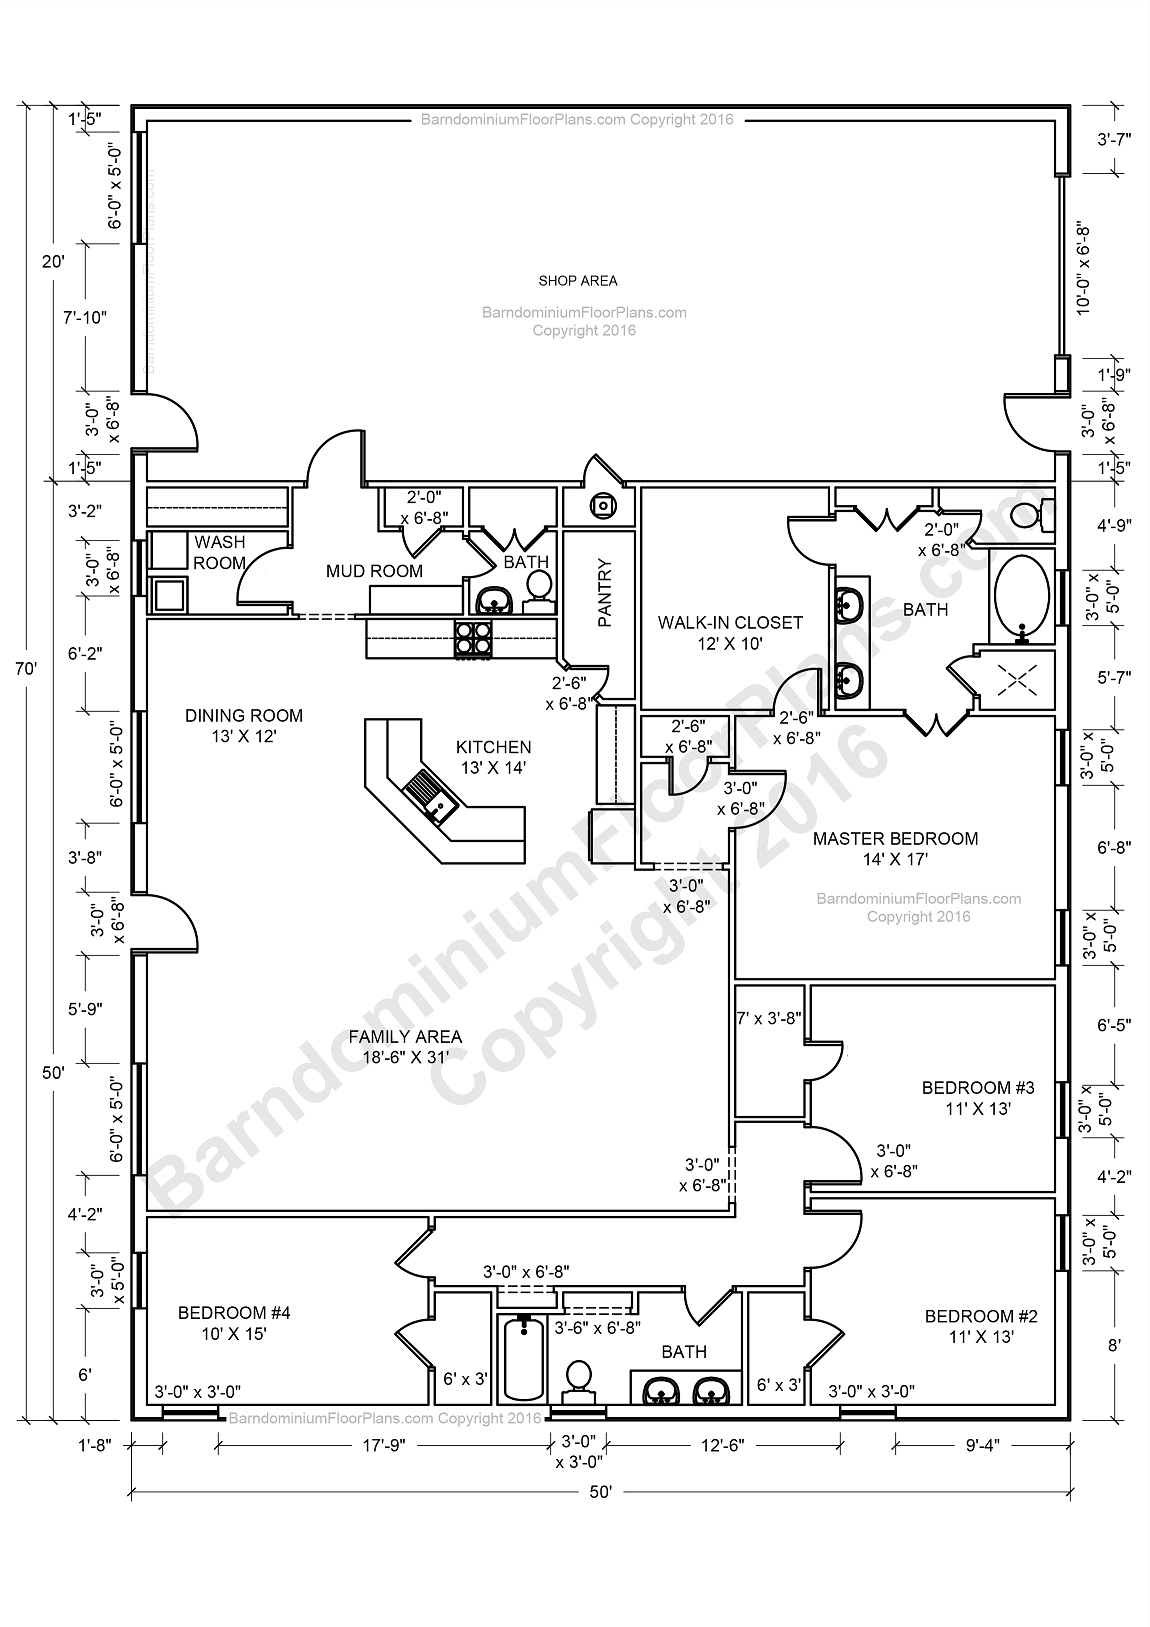 Barndominium floor plans barndominium floor plans 1 800 for Steel barn house plans